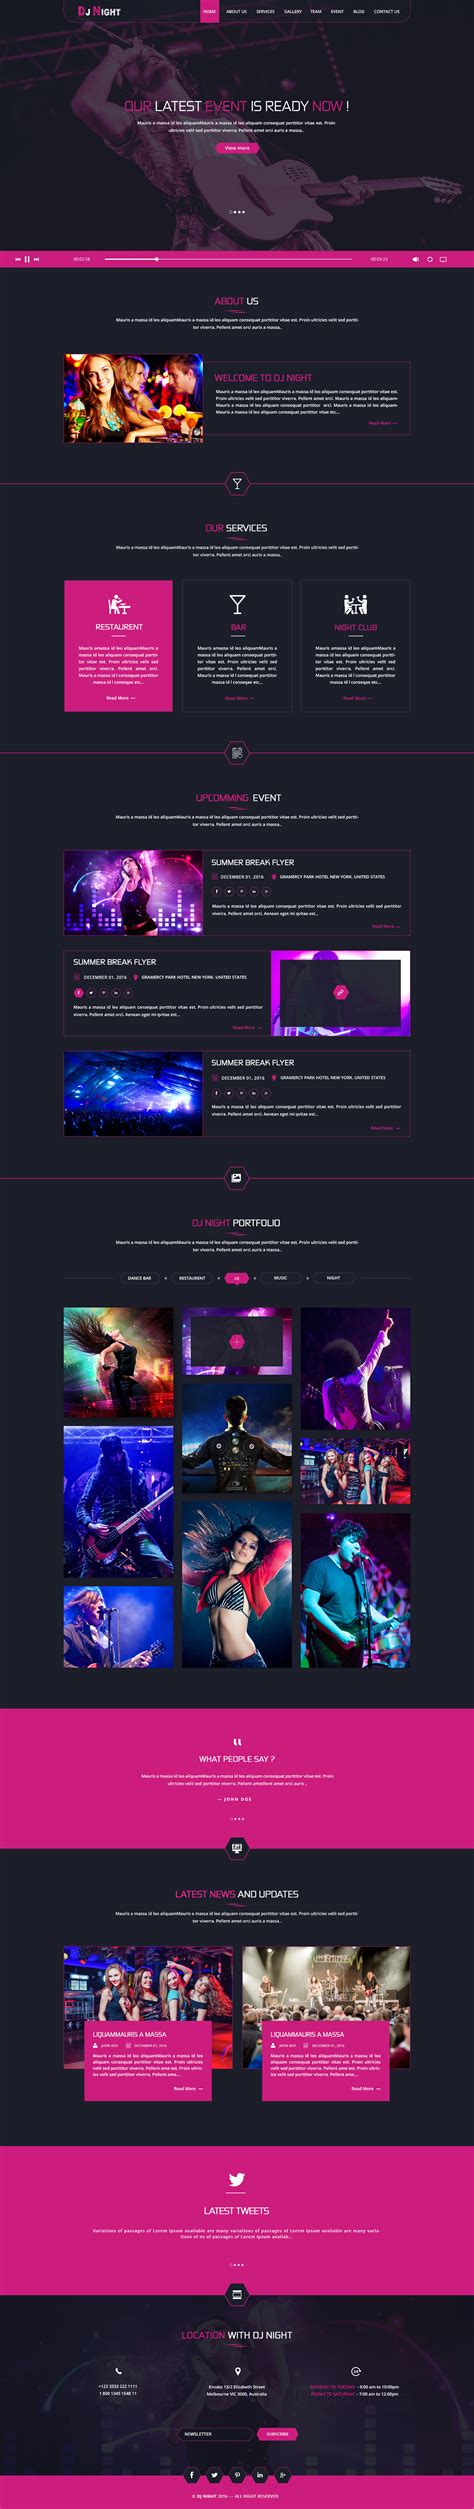 dj themes songs dj night event dj party music club html template by